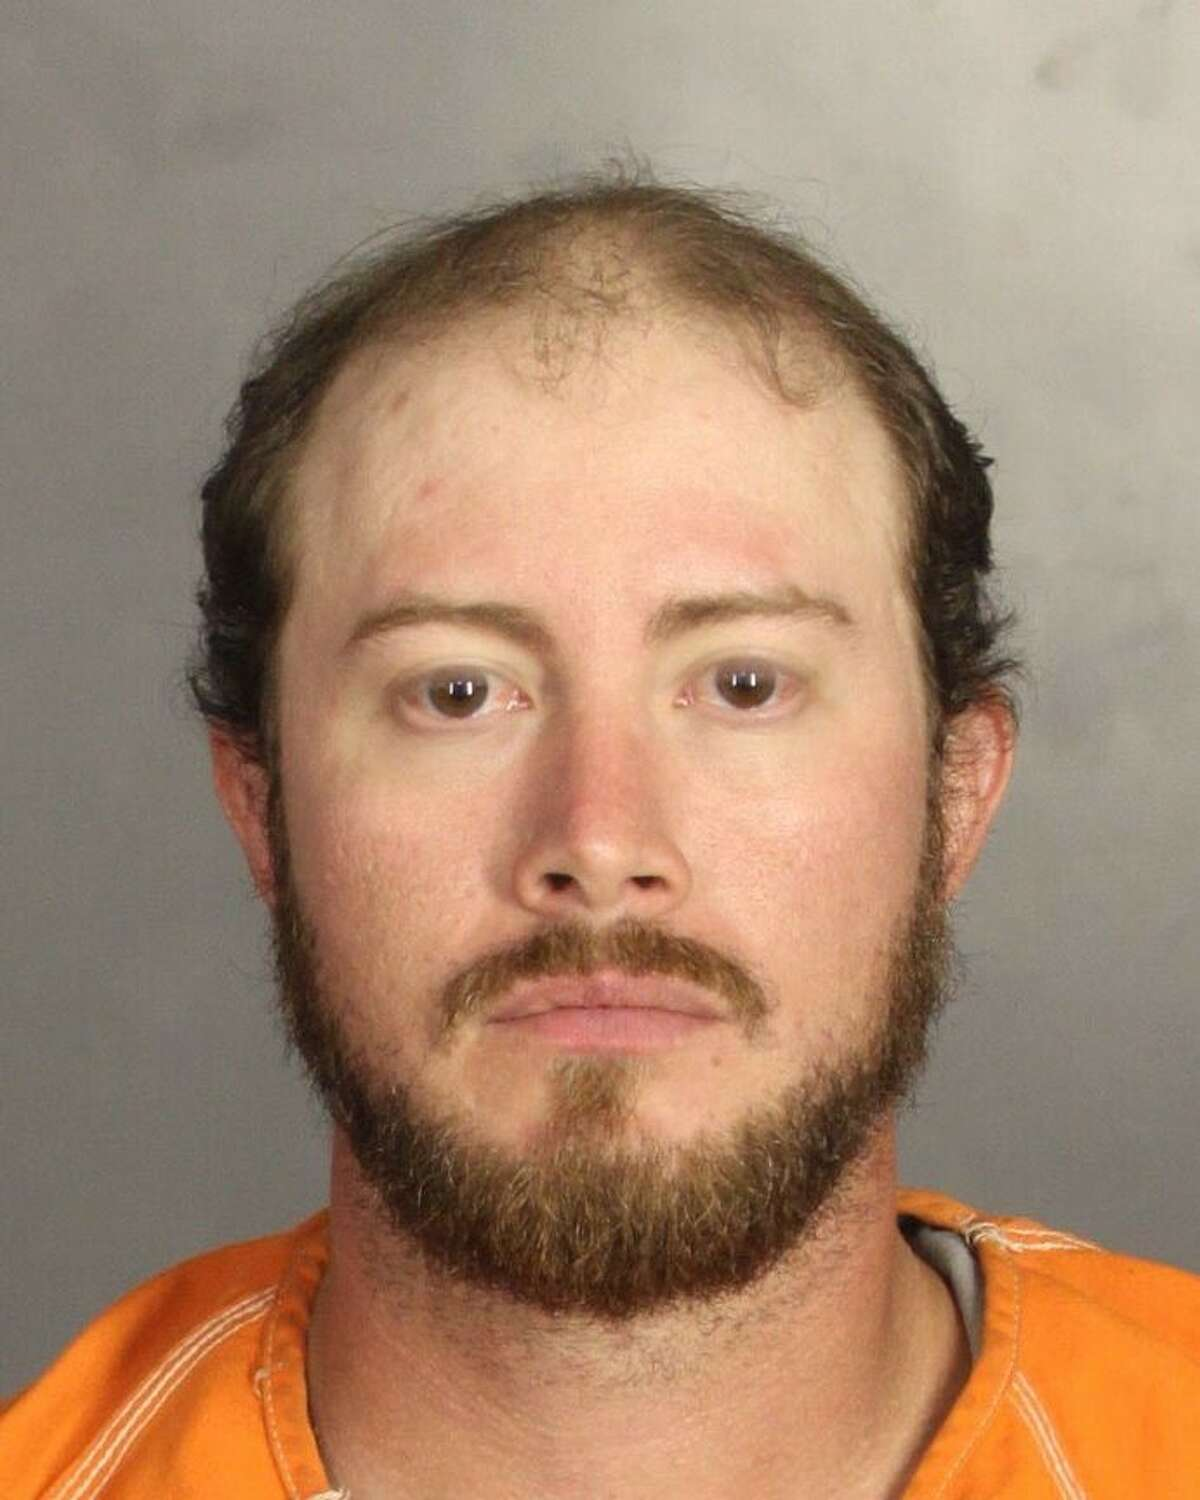 Jacob Reese, 29, was booked and charged with engaging in organized criminal activity in connection to a shooting involving motorcycle gangs at a Twin Peaks restaurant in Waco at around noon on May 17, 2015. The shooting left nine dead and 18 injured.